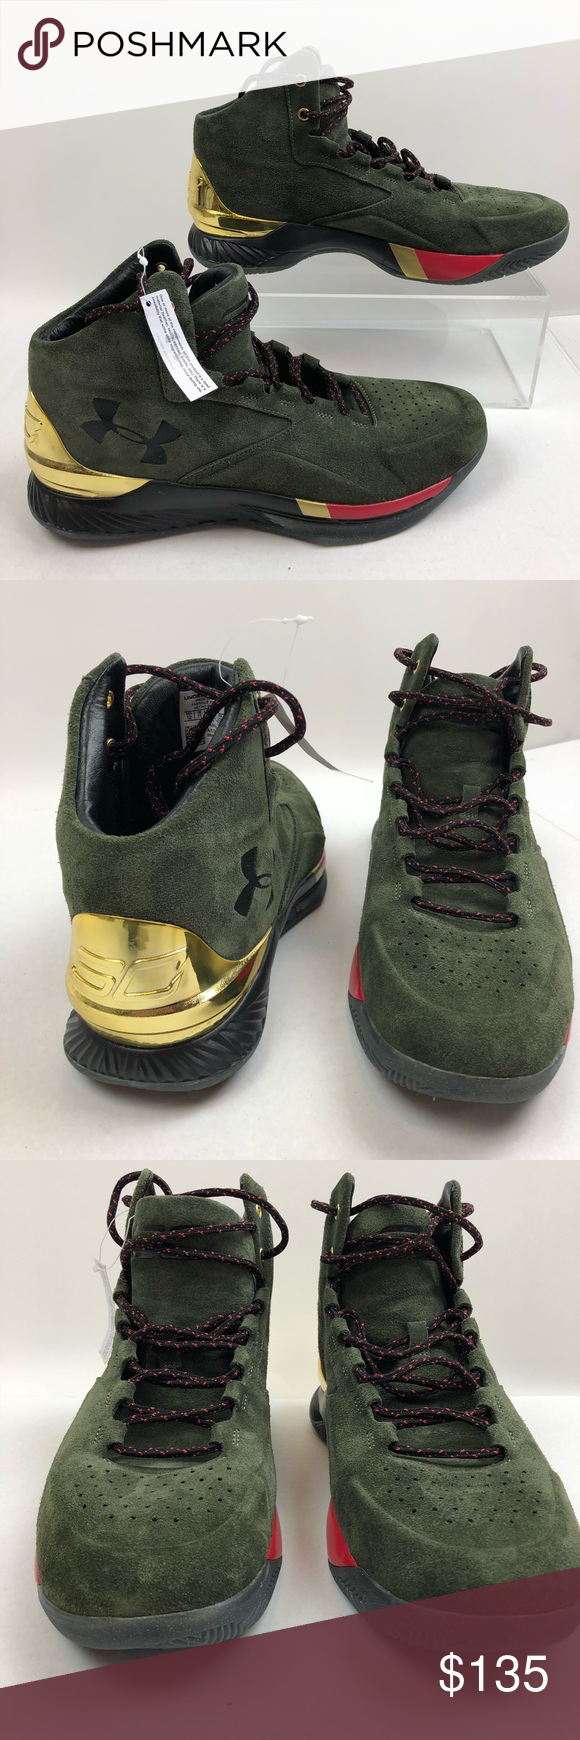 1cb3287cf0c5 Under Armour Curry 1 Lux Mid Suede Basketball 12 Under Armour Curry 1 Lux  Mid Suede 1296617-330 Metallic Gold Basketball Shoes Men s Size 12 UA CURRY  1 LUX ...